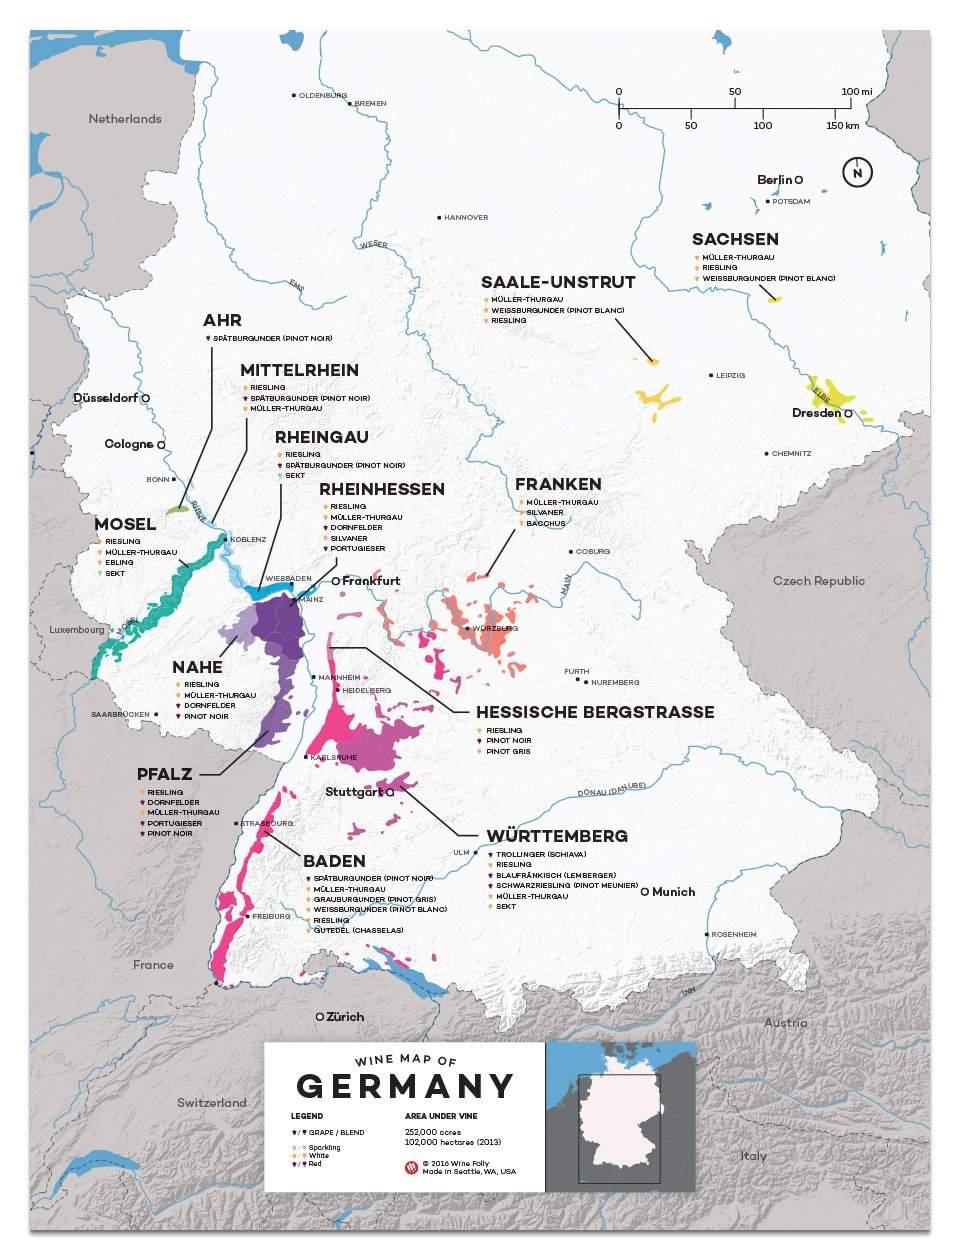 An Overview of German Wine Regions